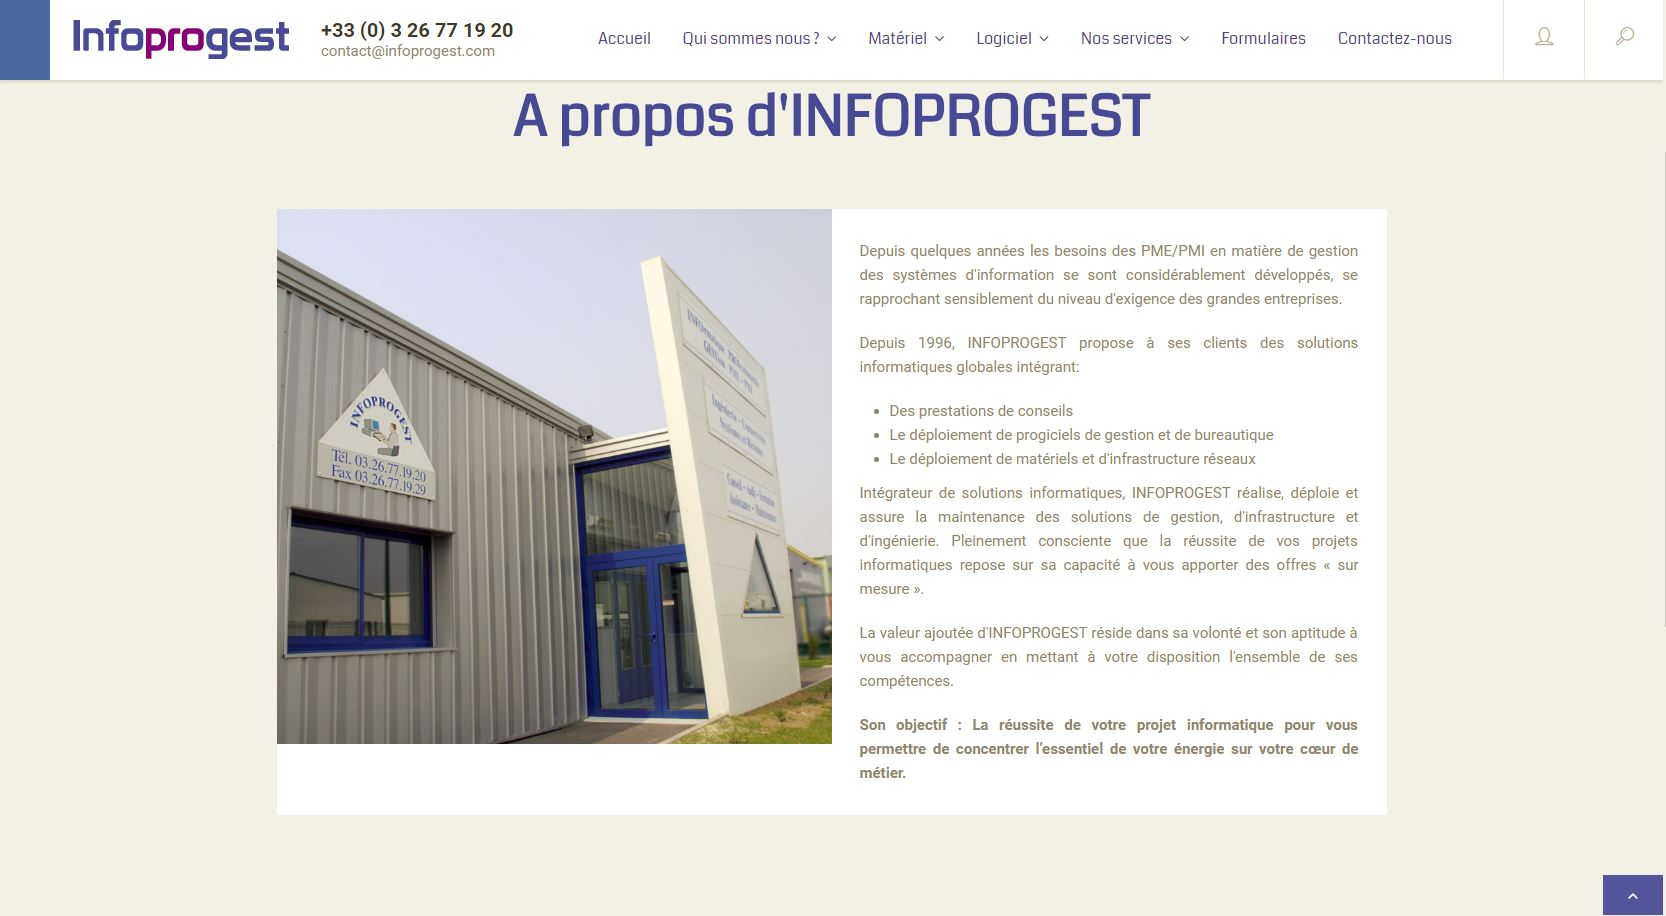 Infoprogest, solutions informatiques Reims